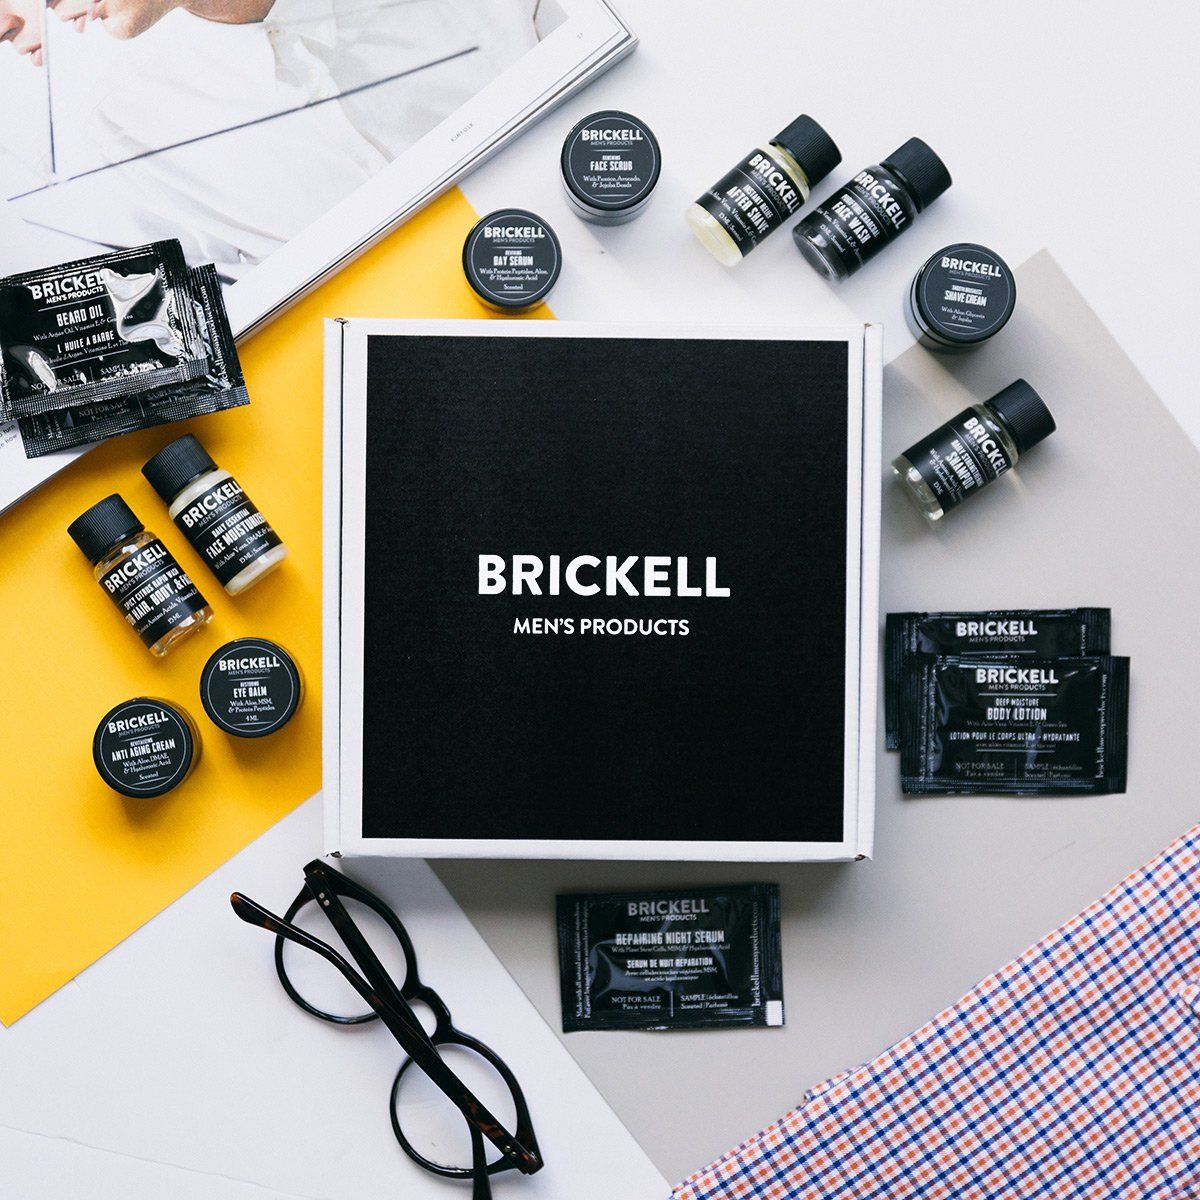 Need a Father's Day Gift on a Budget? Brickell Men's Grooming Kits are Free.